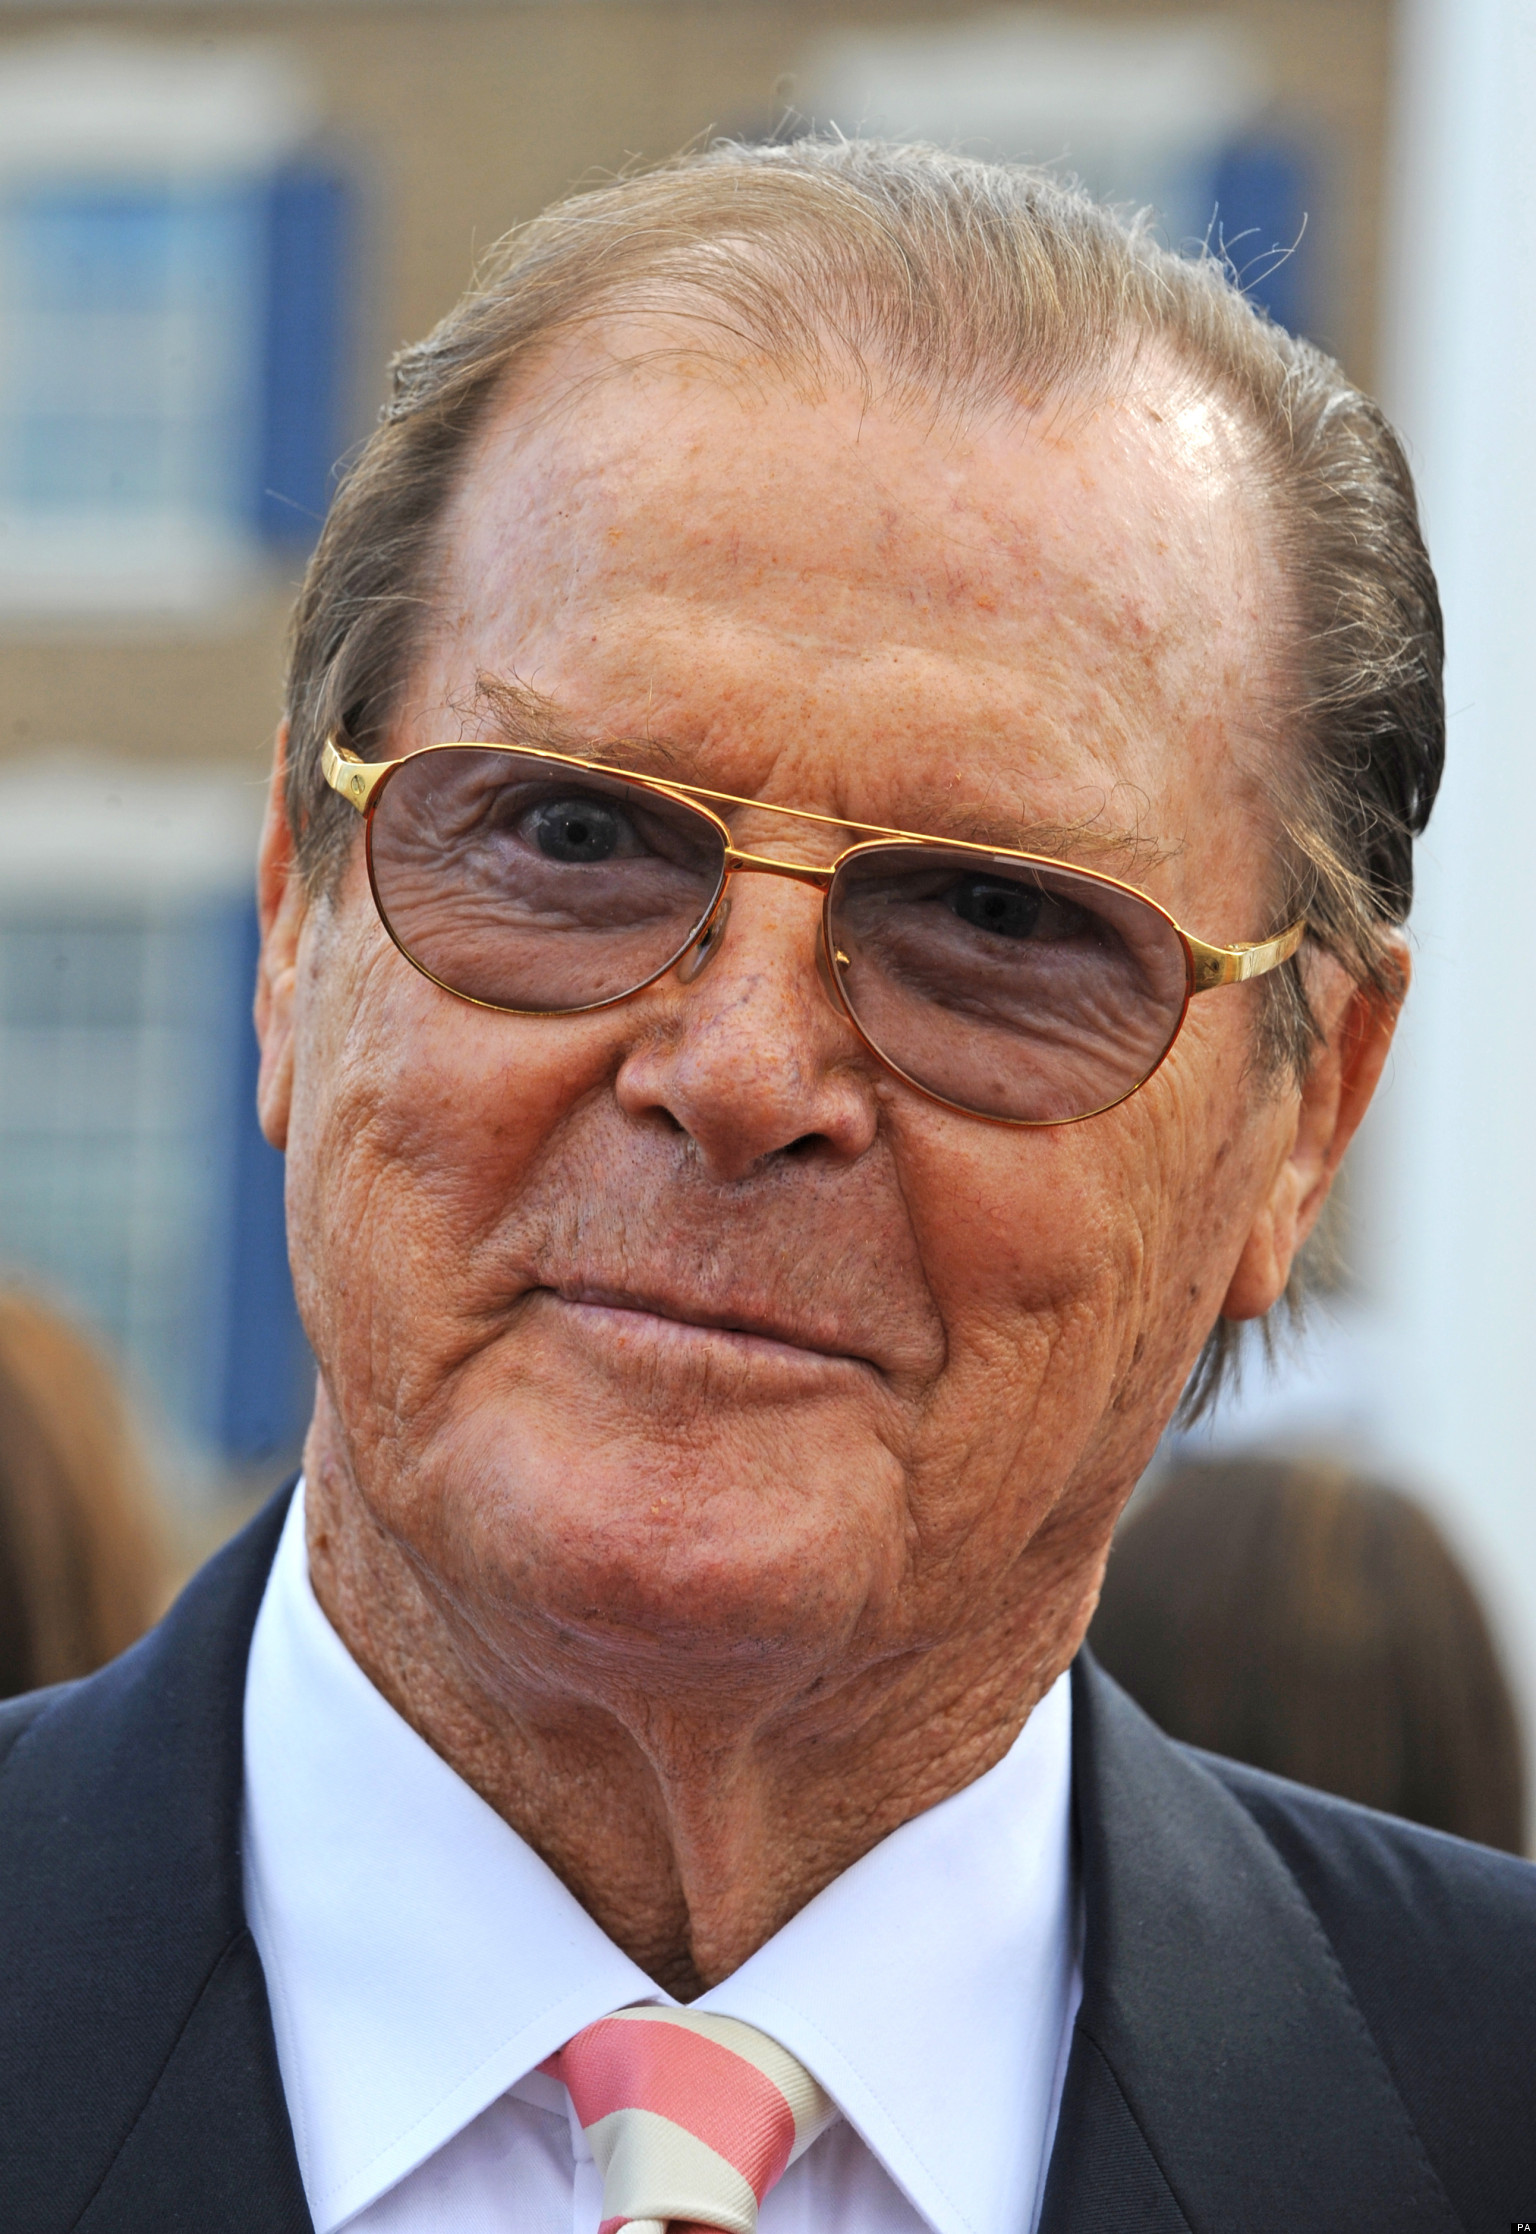 James Bond Star Sir Roger Moore Reveals He Was A Victim Of